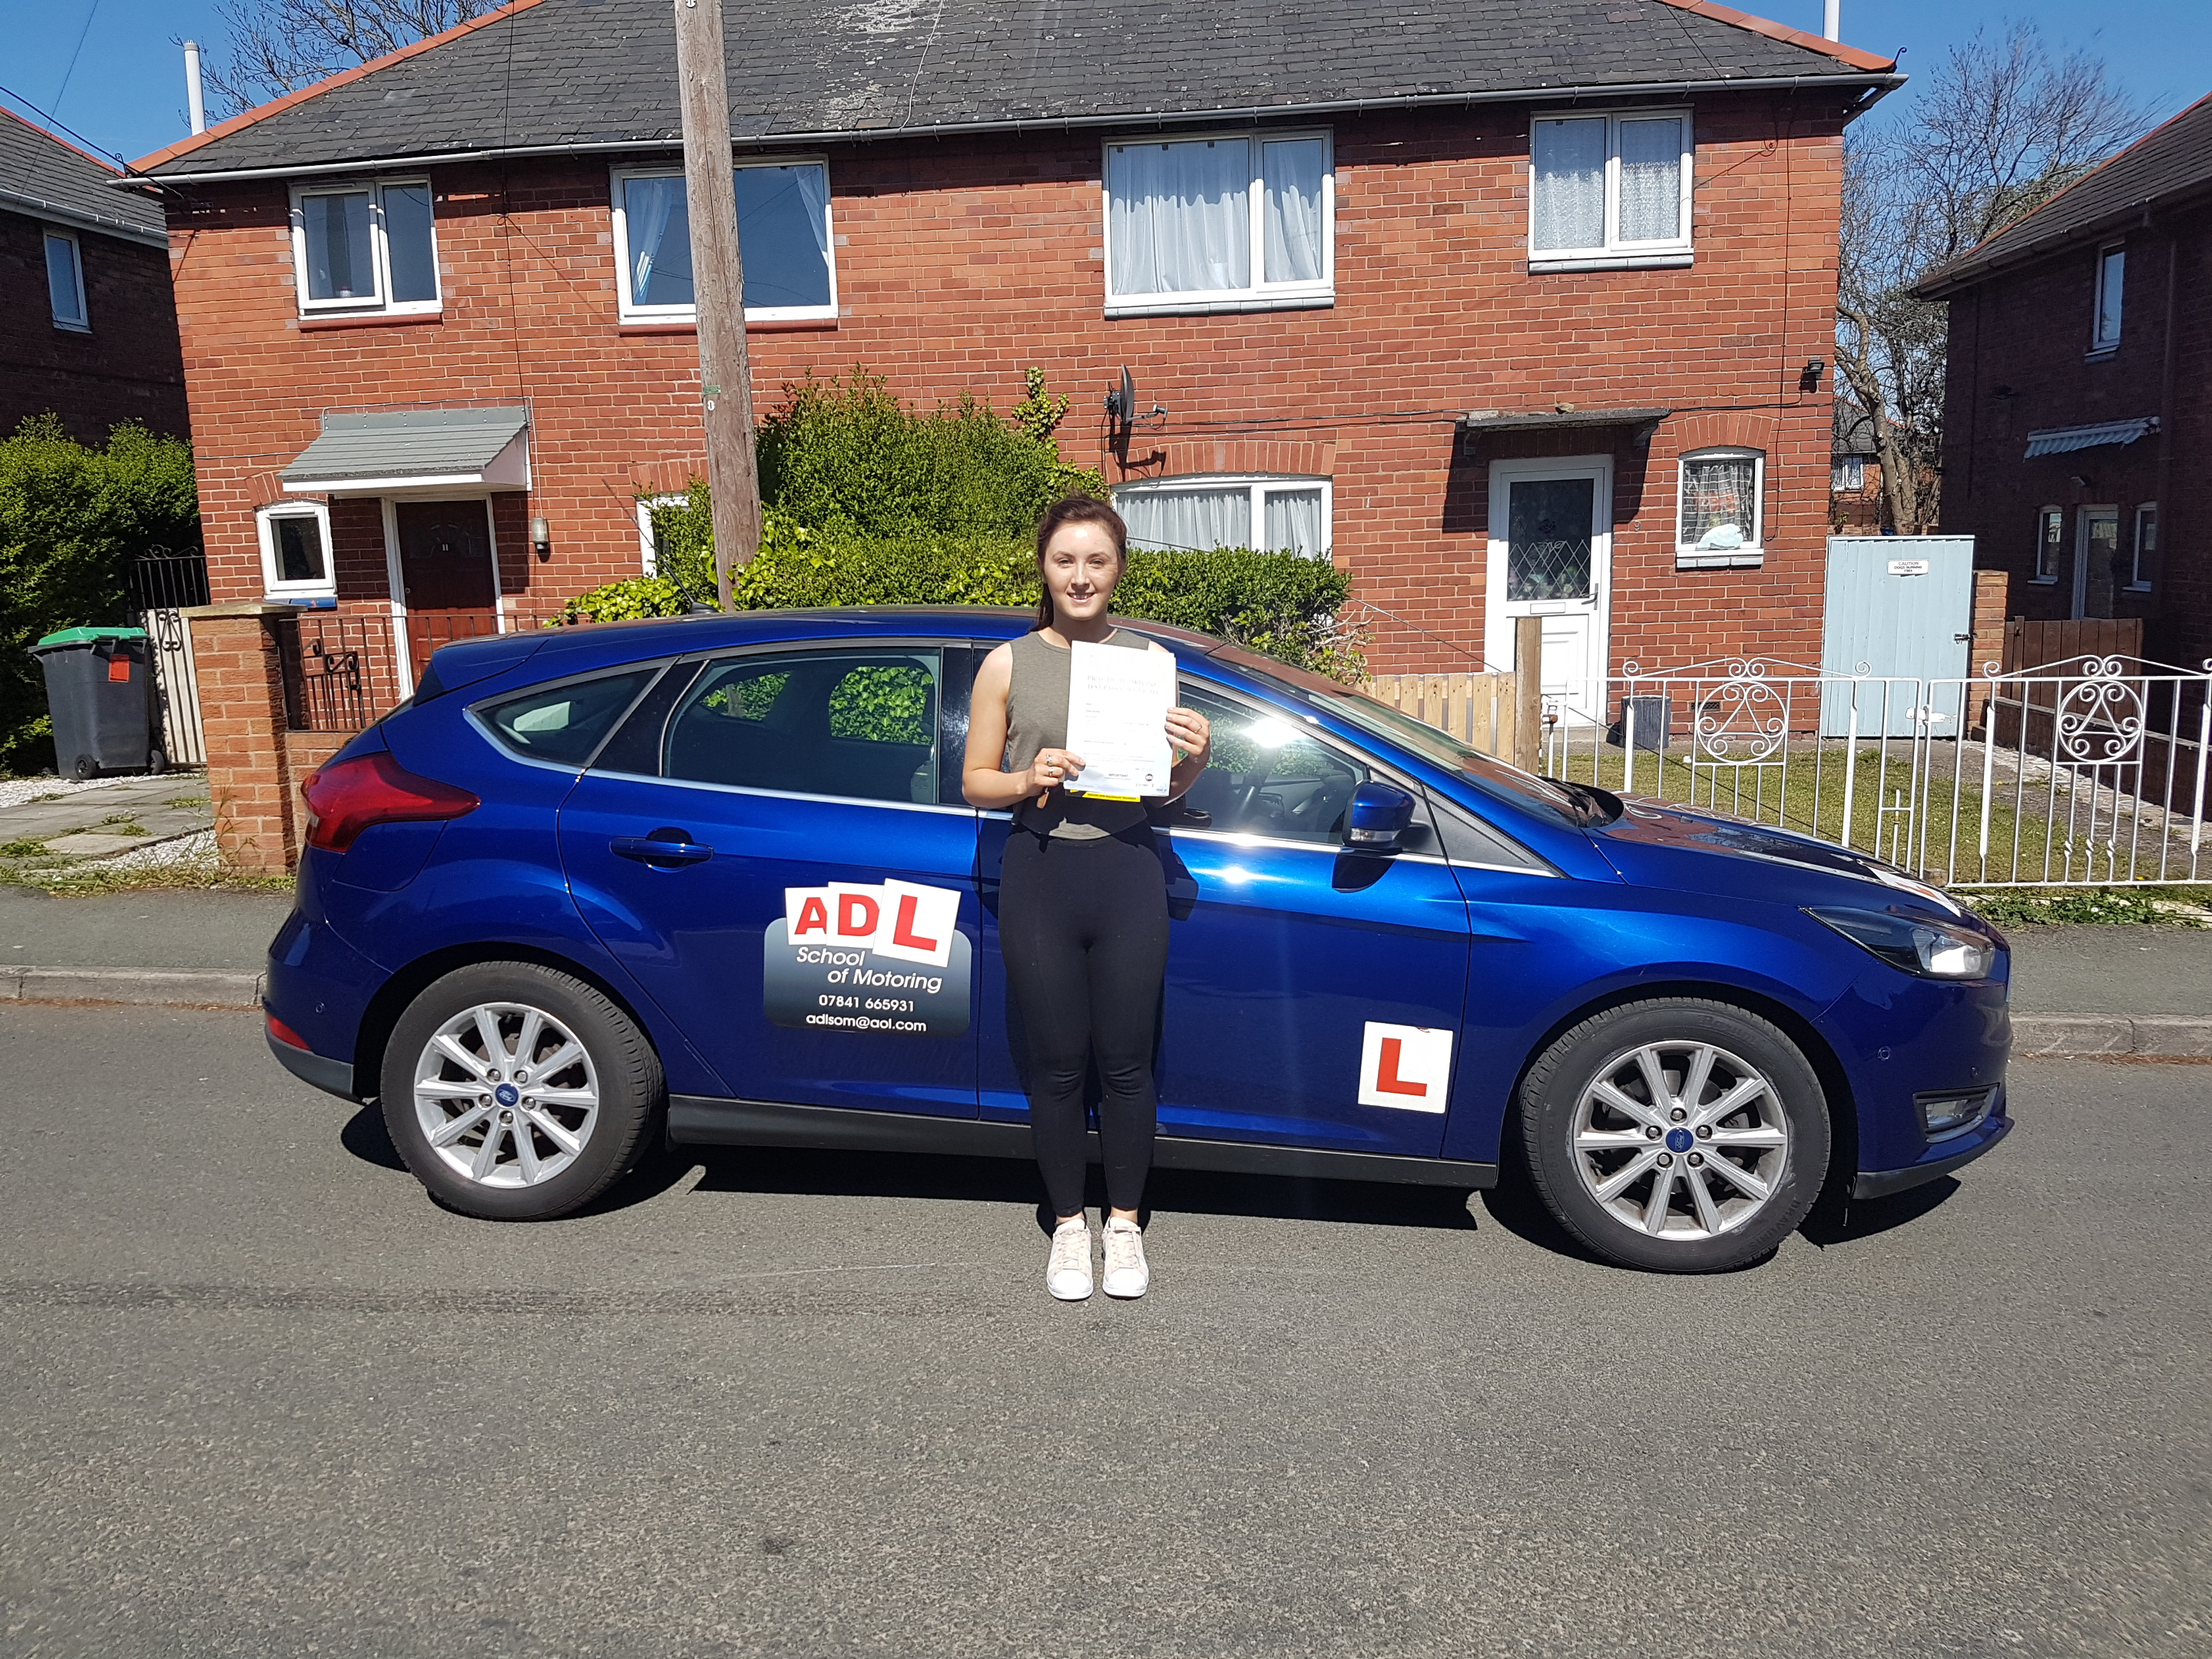 More first time success for ADL SCHOOL OF MOTORING